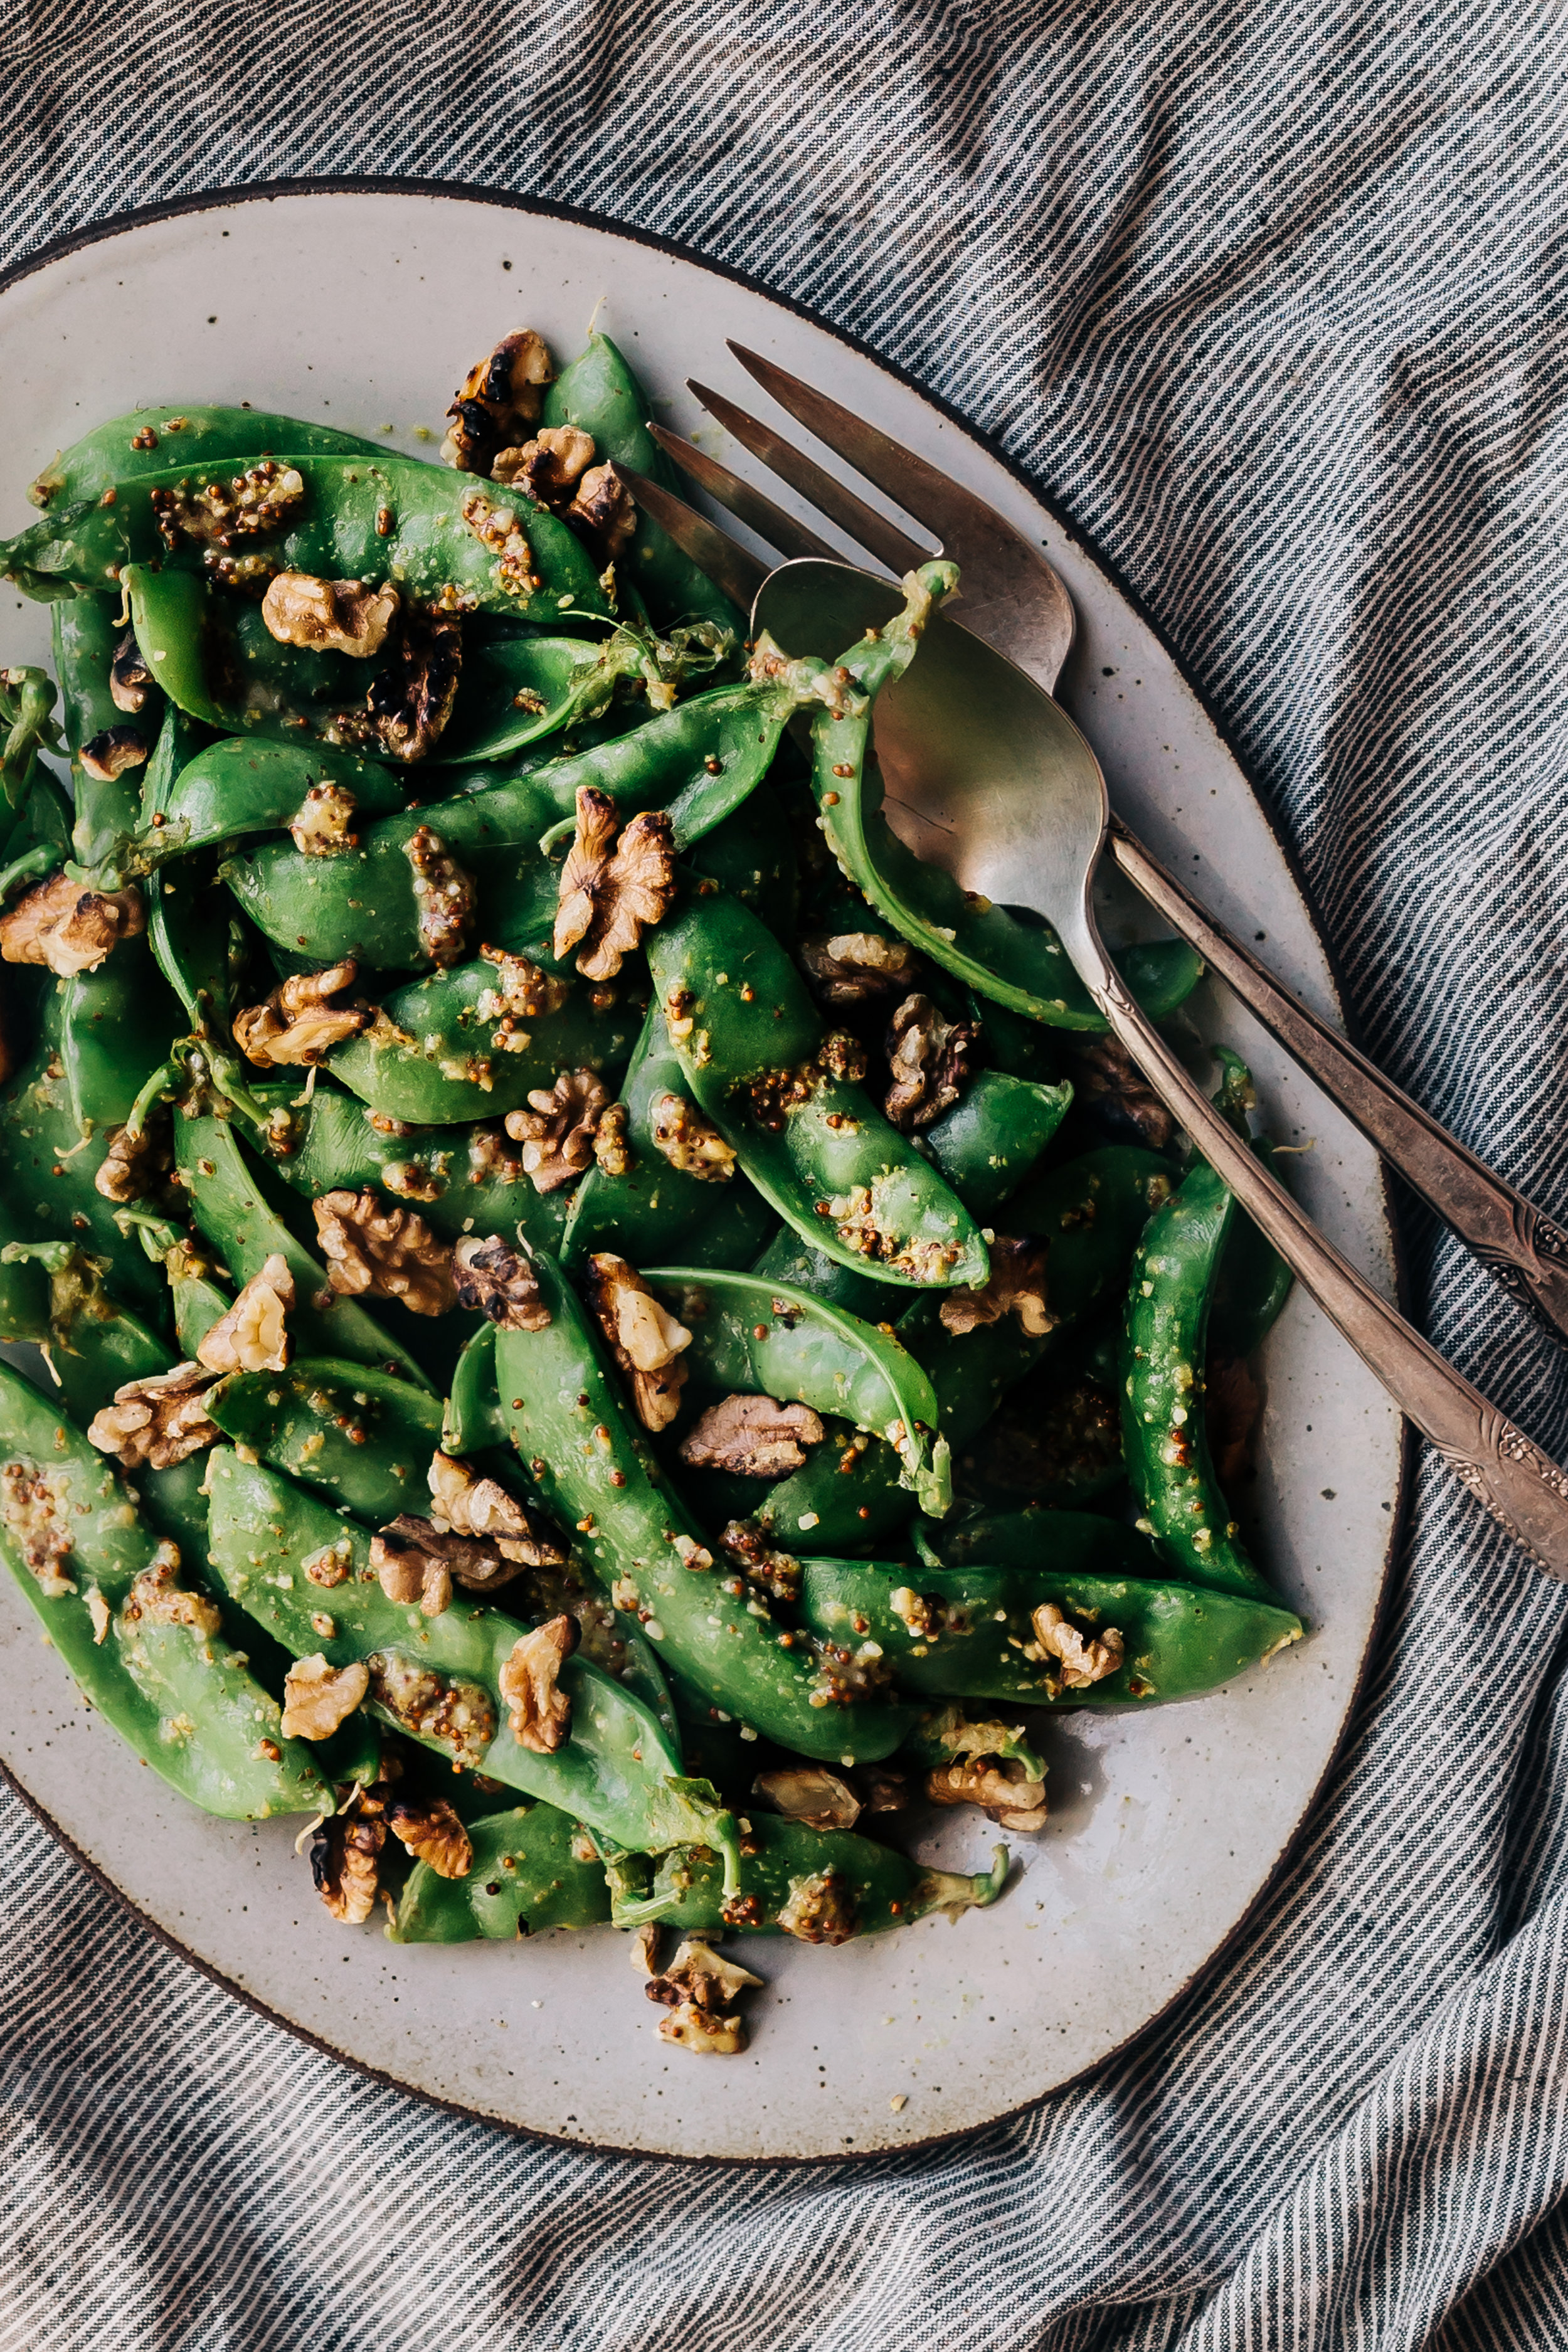 Miso Mustard Snow Peas with Toasted Walnuts